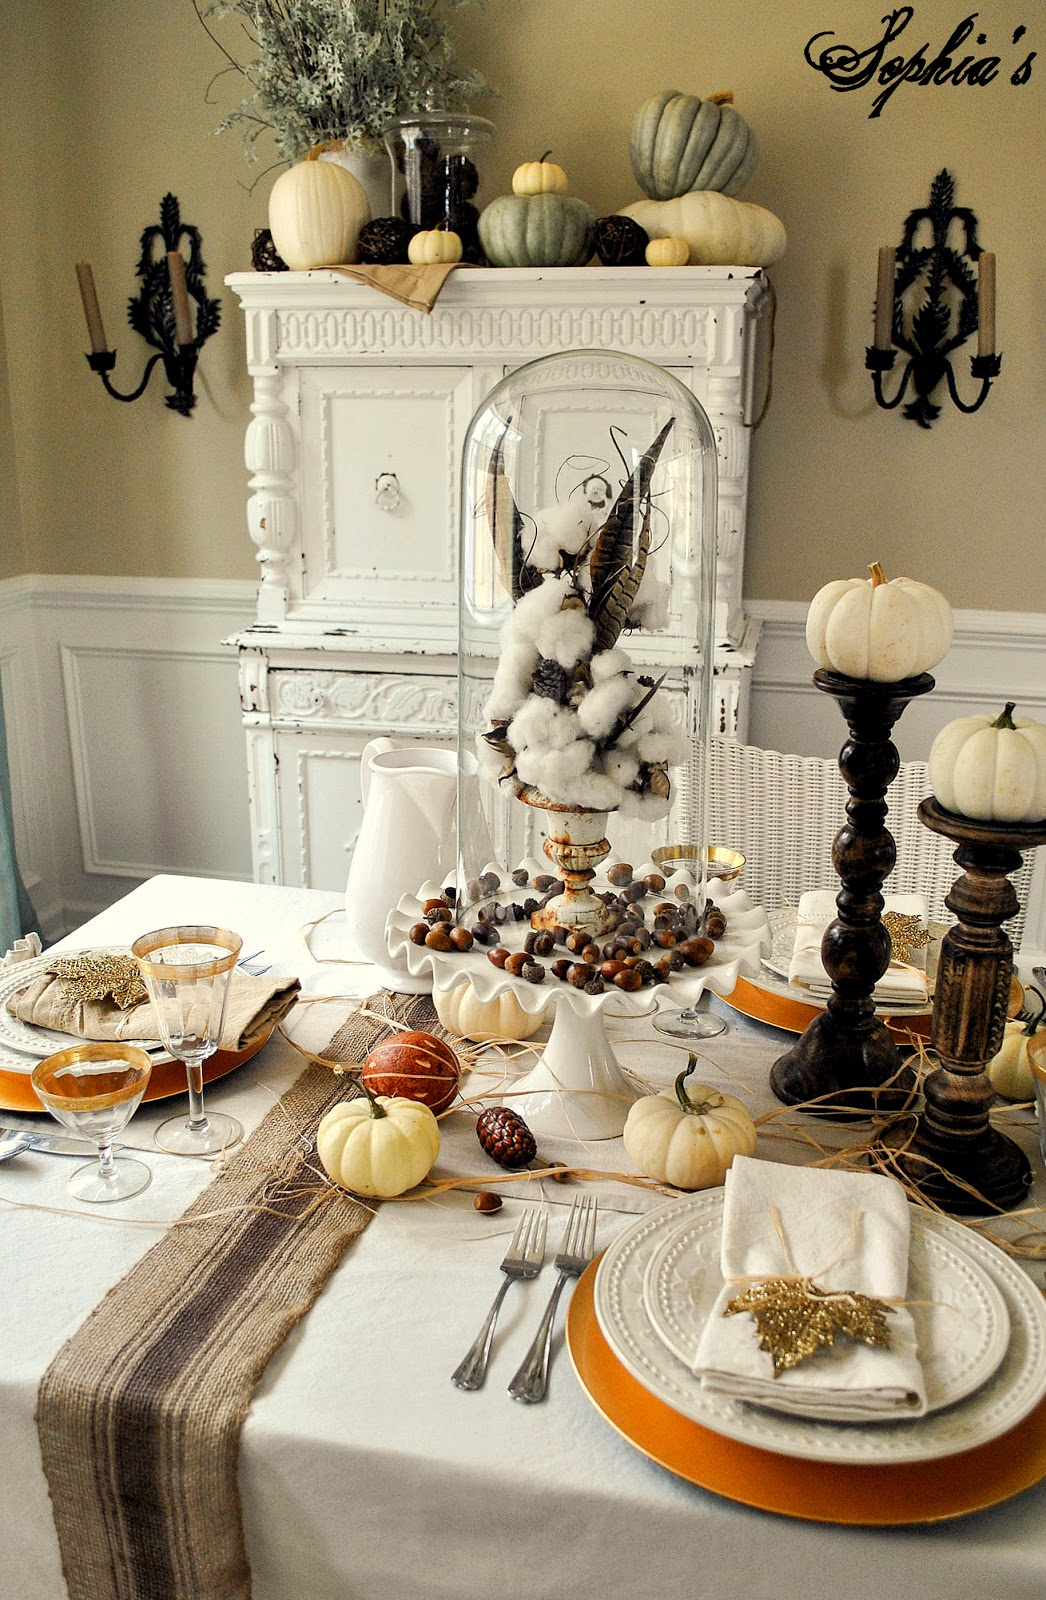 Sophia 39 s thanksgiving table setting for Thanksgiving home ideas